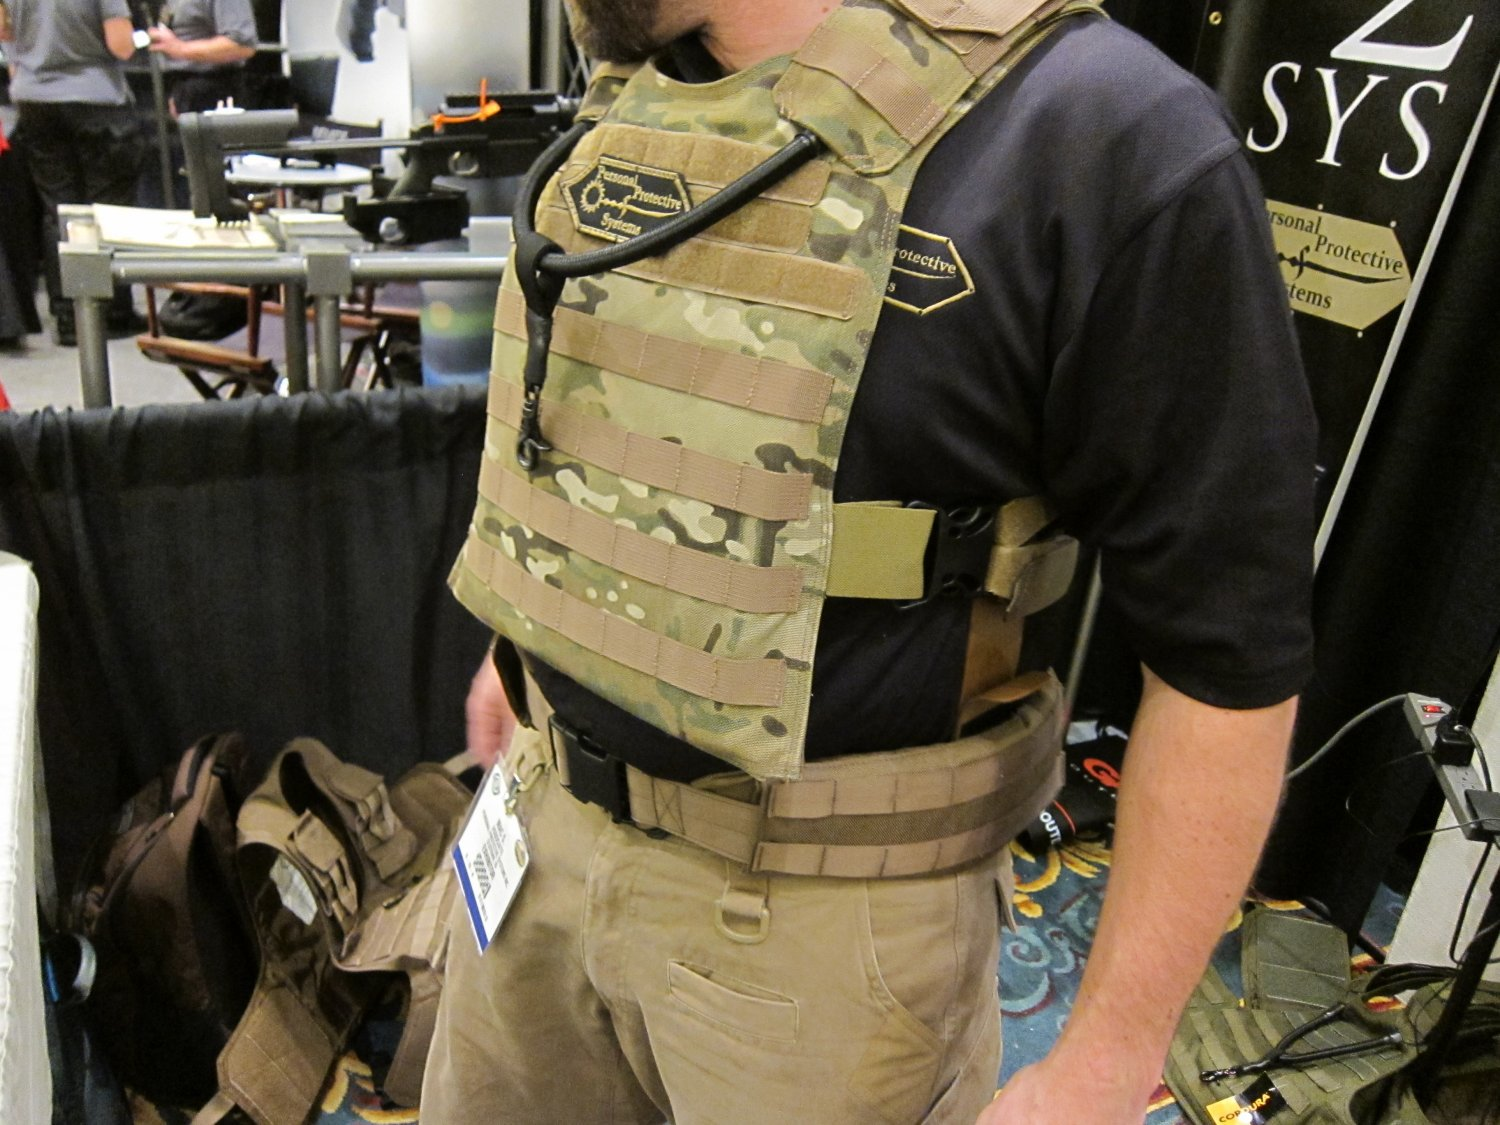 P2 Systems P2Sys Centurion Armour Hastati I Plate Carrier with Integra Sling at SHOT Show 2011 3 <!  :en  >Hardpoint Equipment Tactical Armor Carriers (formerly Personal Protective Systems, or P2 Systems): Best Tactical Body Armor Plate Carriers on the Planet? DR Looks at the Latest Hard Point Hard Armor Plate Carriers, Battle Belt, MOLLE Backpack System, and Passive Ventilation Channels/Removable Padding System at SHOT Show 2011 (Photos and Video!) <!  :  >